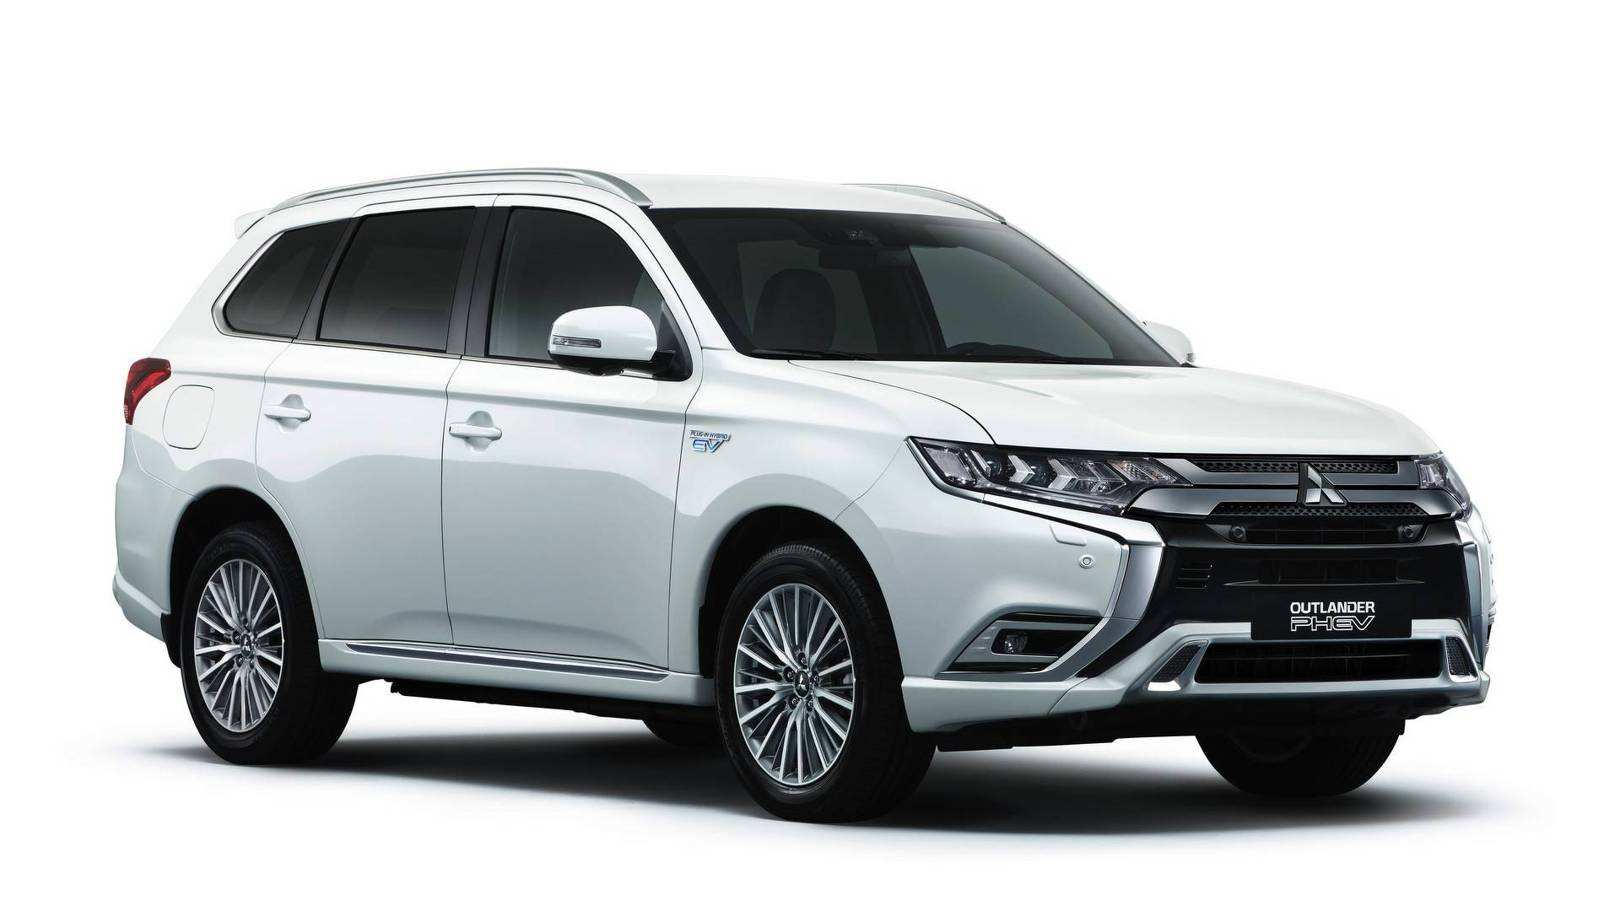 63 The Best 2019 Mitsubishi Outlander Phev Review Review And Release Date